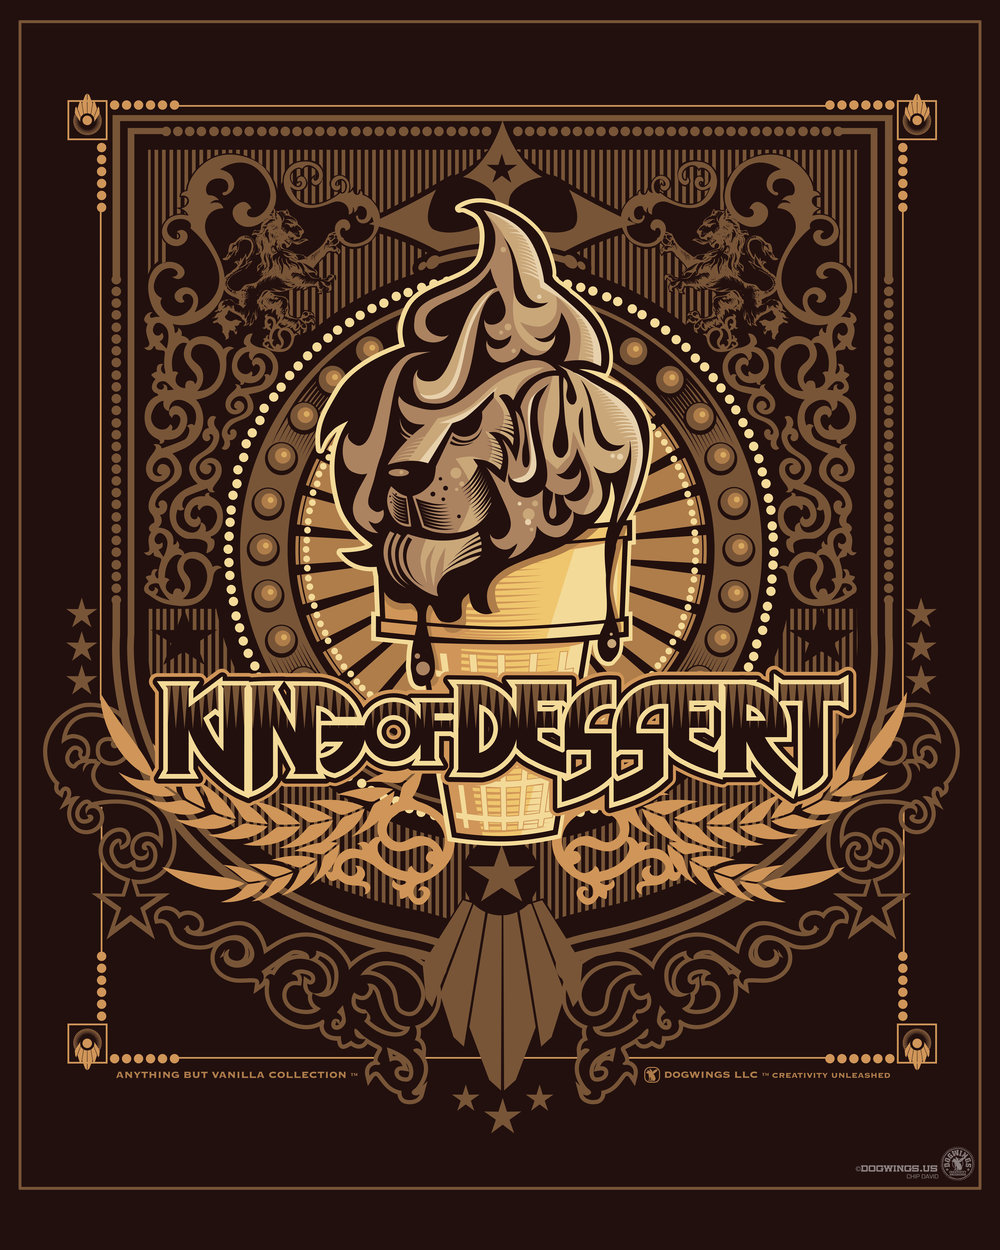 ABV COLLECTION: KING OF DESSERT